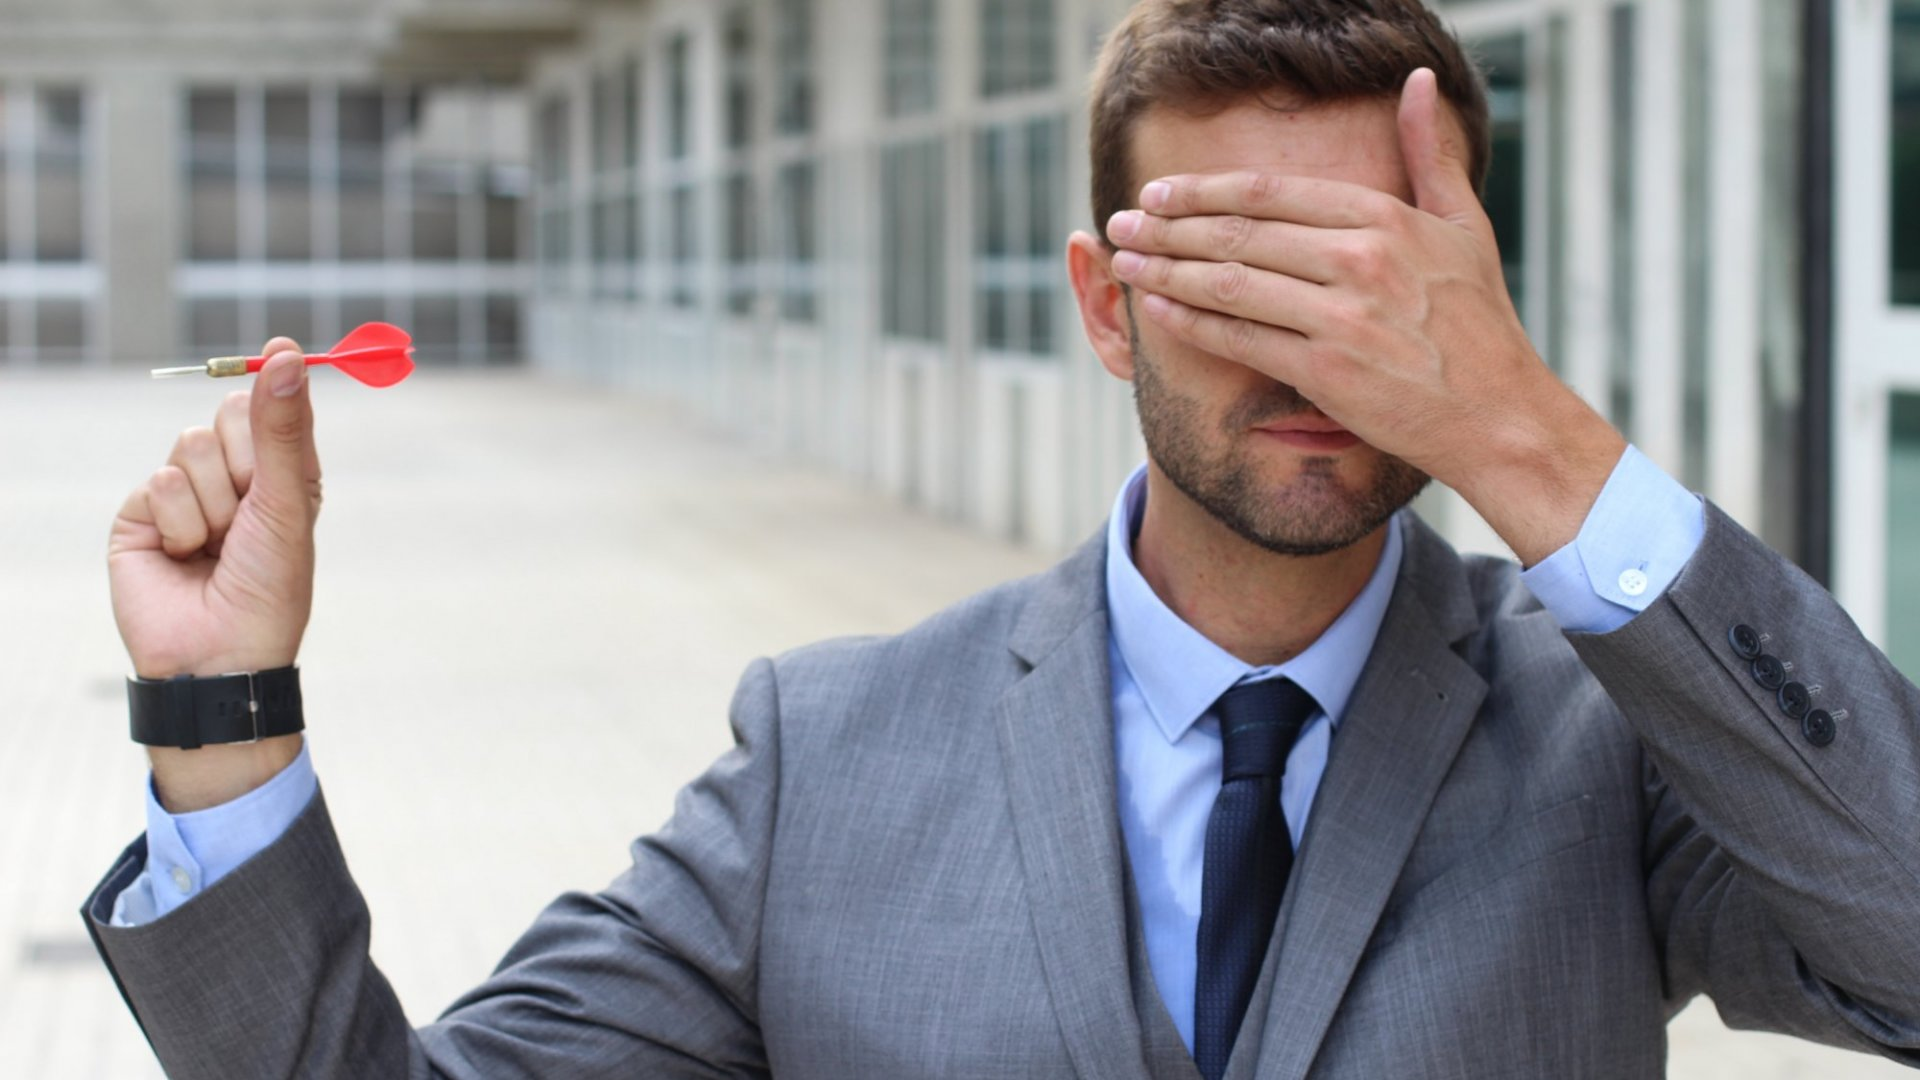 We Need to Stop Glorifying Failure. Here's What to Do Instead